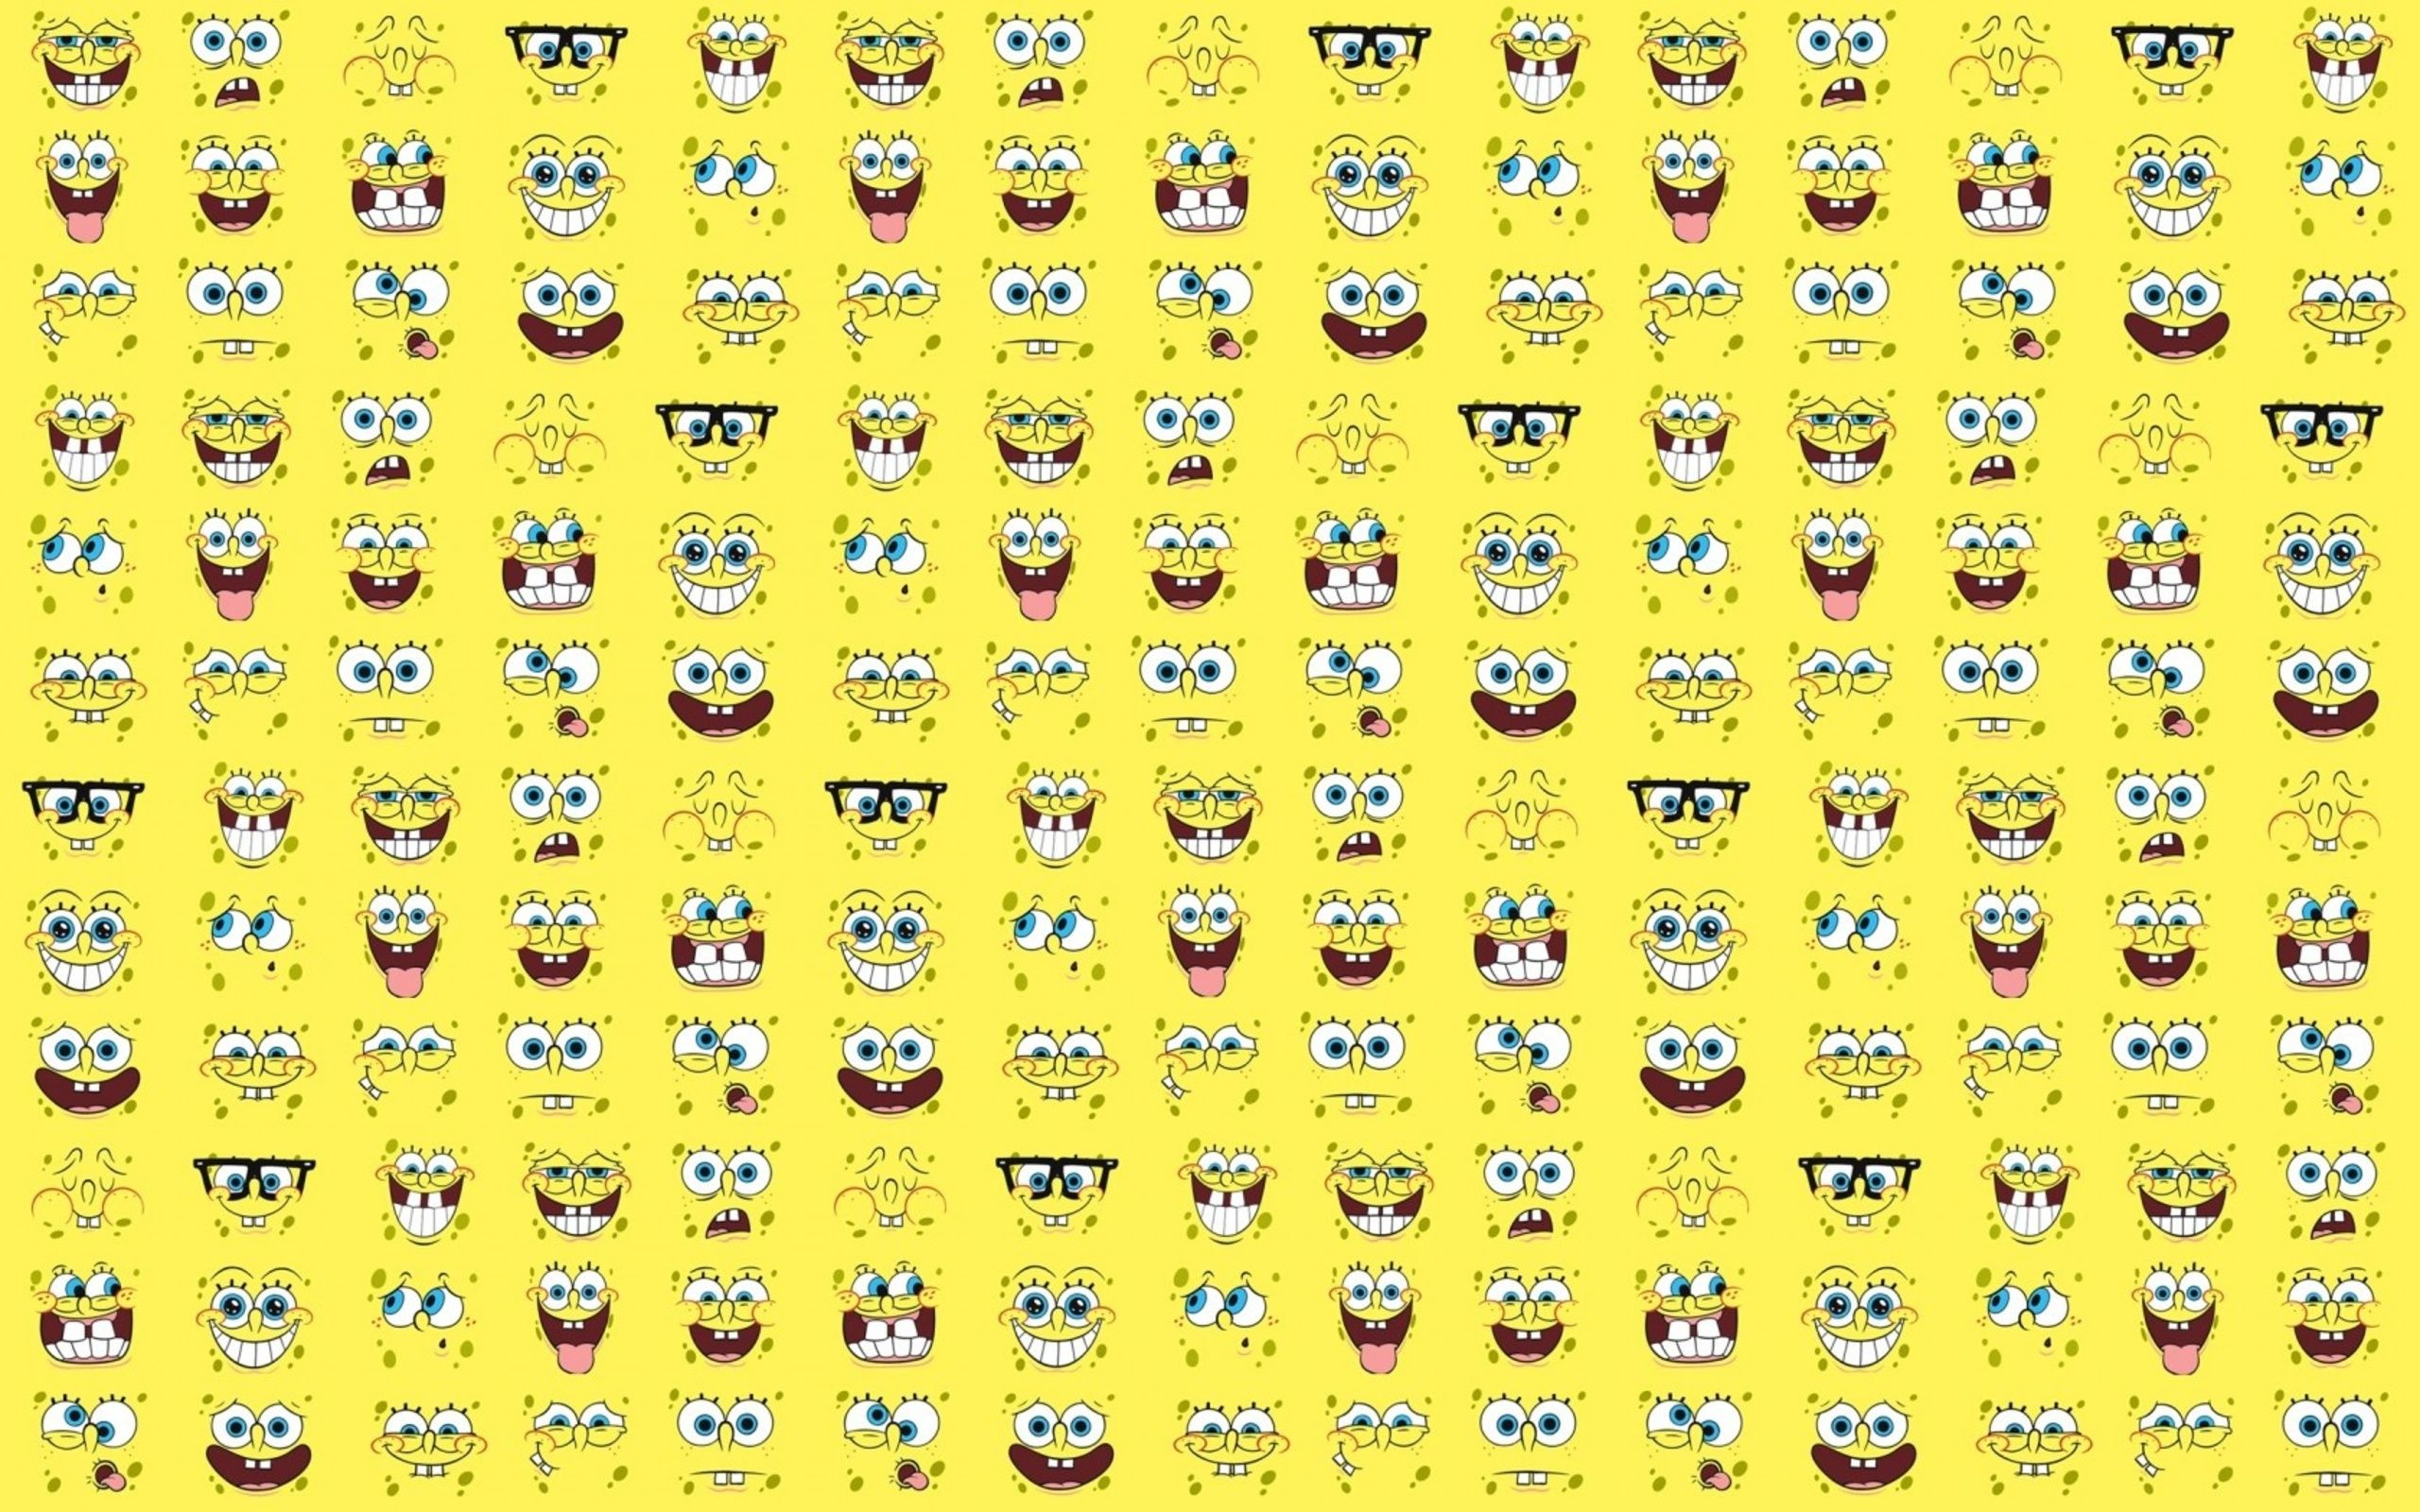 62 Spongebob Squarepants Hd Wallpapers Backgrounds Wallpaper Abyss Spongebob Wallpaper Spongebob Background Spongebob Squarepants